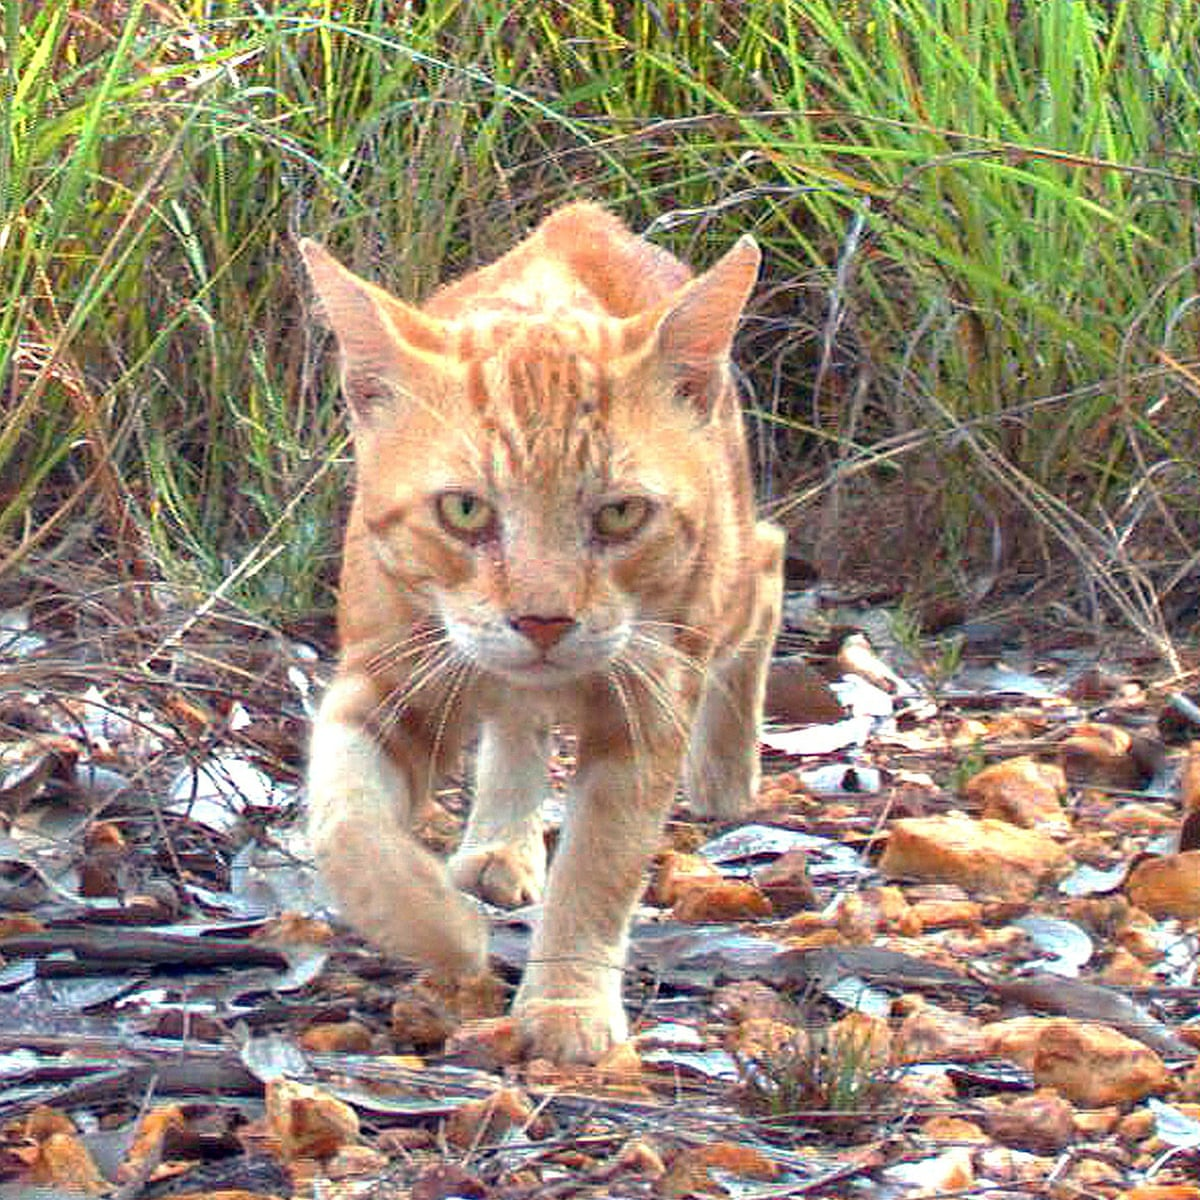 Parasitic Disease Spread By Feral Cats Likely To Be Killing Native Wildlife Environment The Guardian